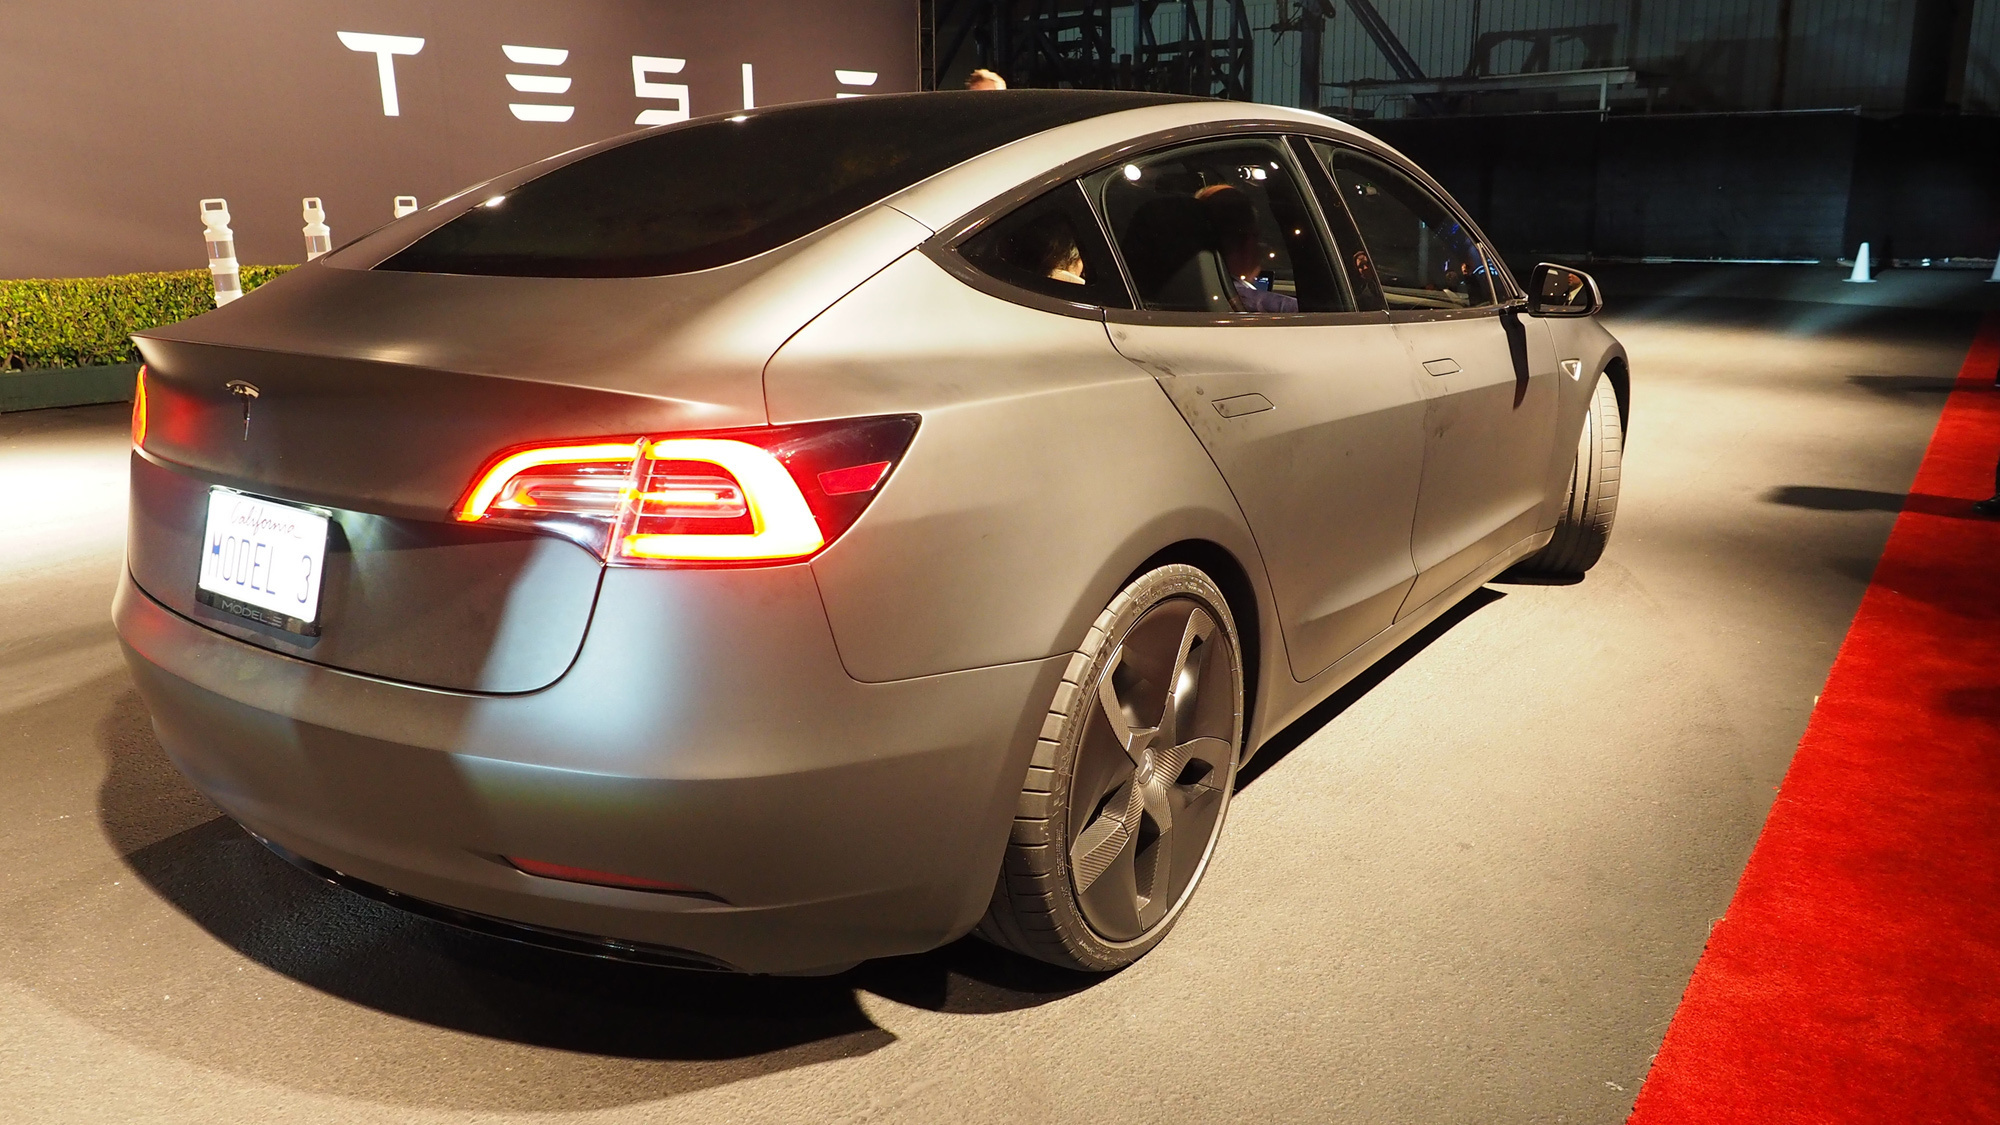 Tesla Model 3 Images Photos Pictures Backgrounds